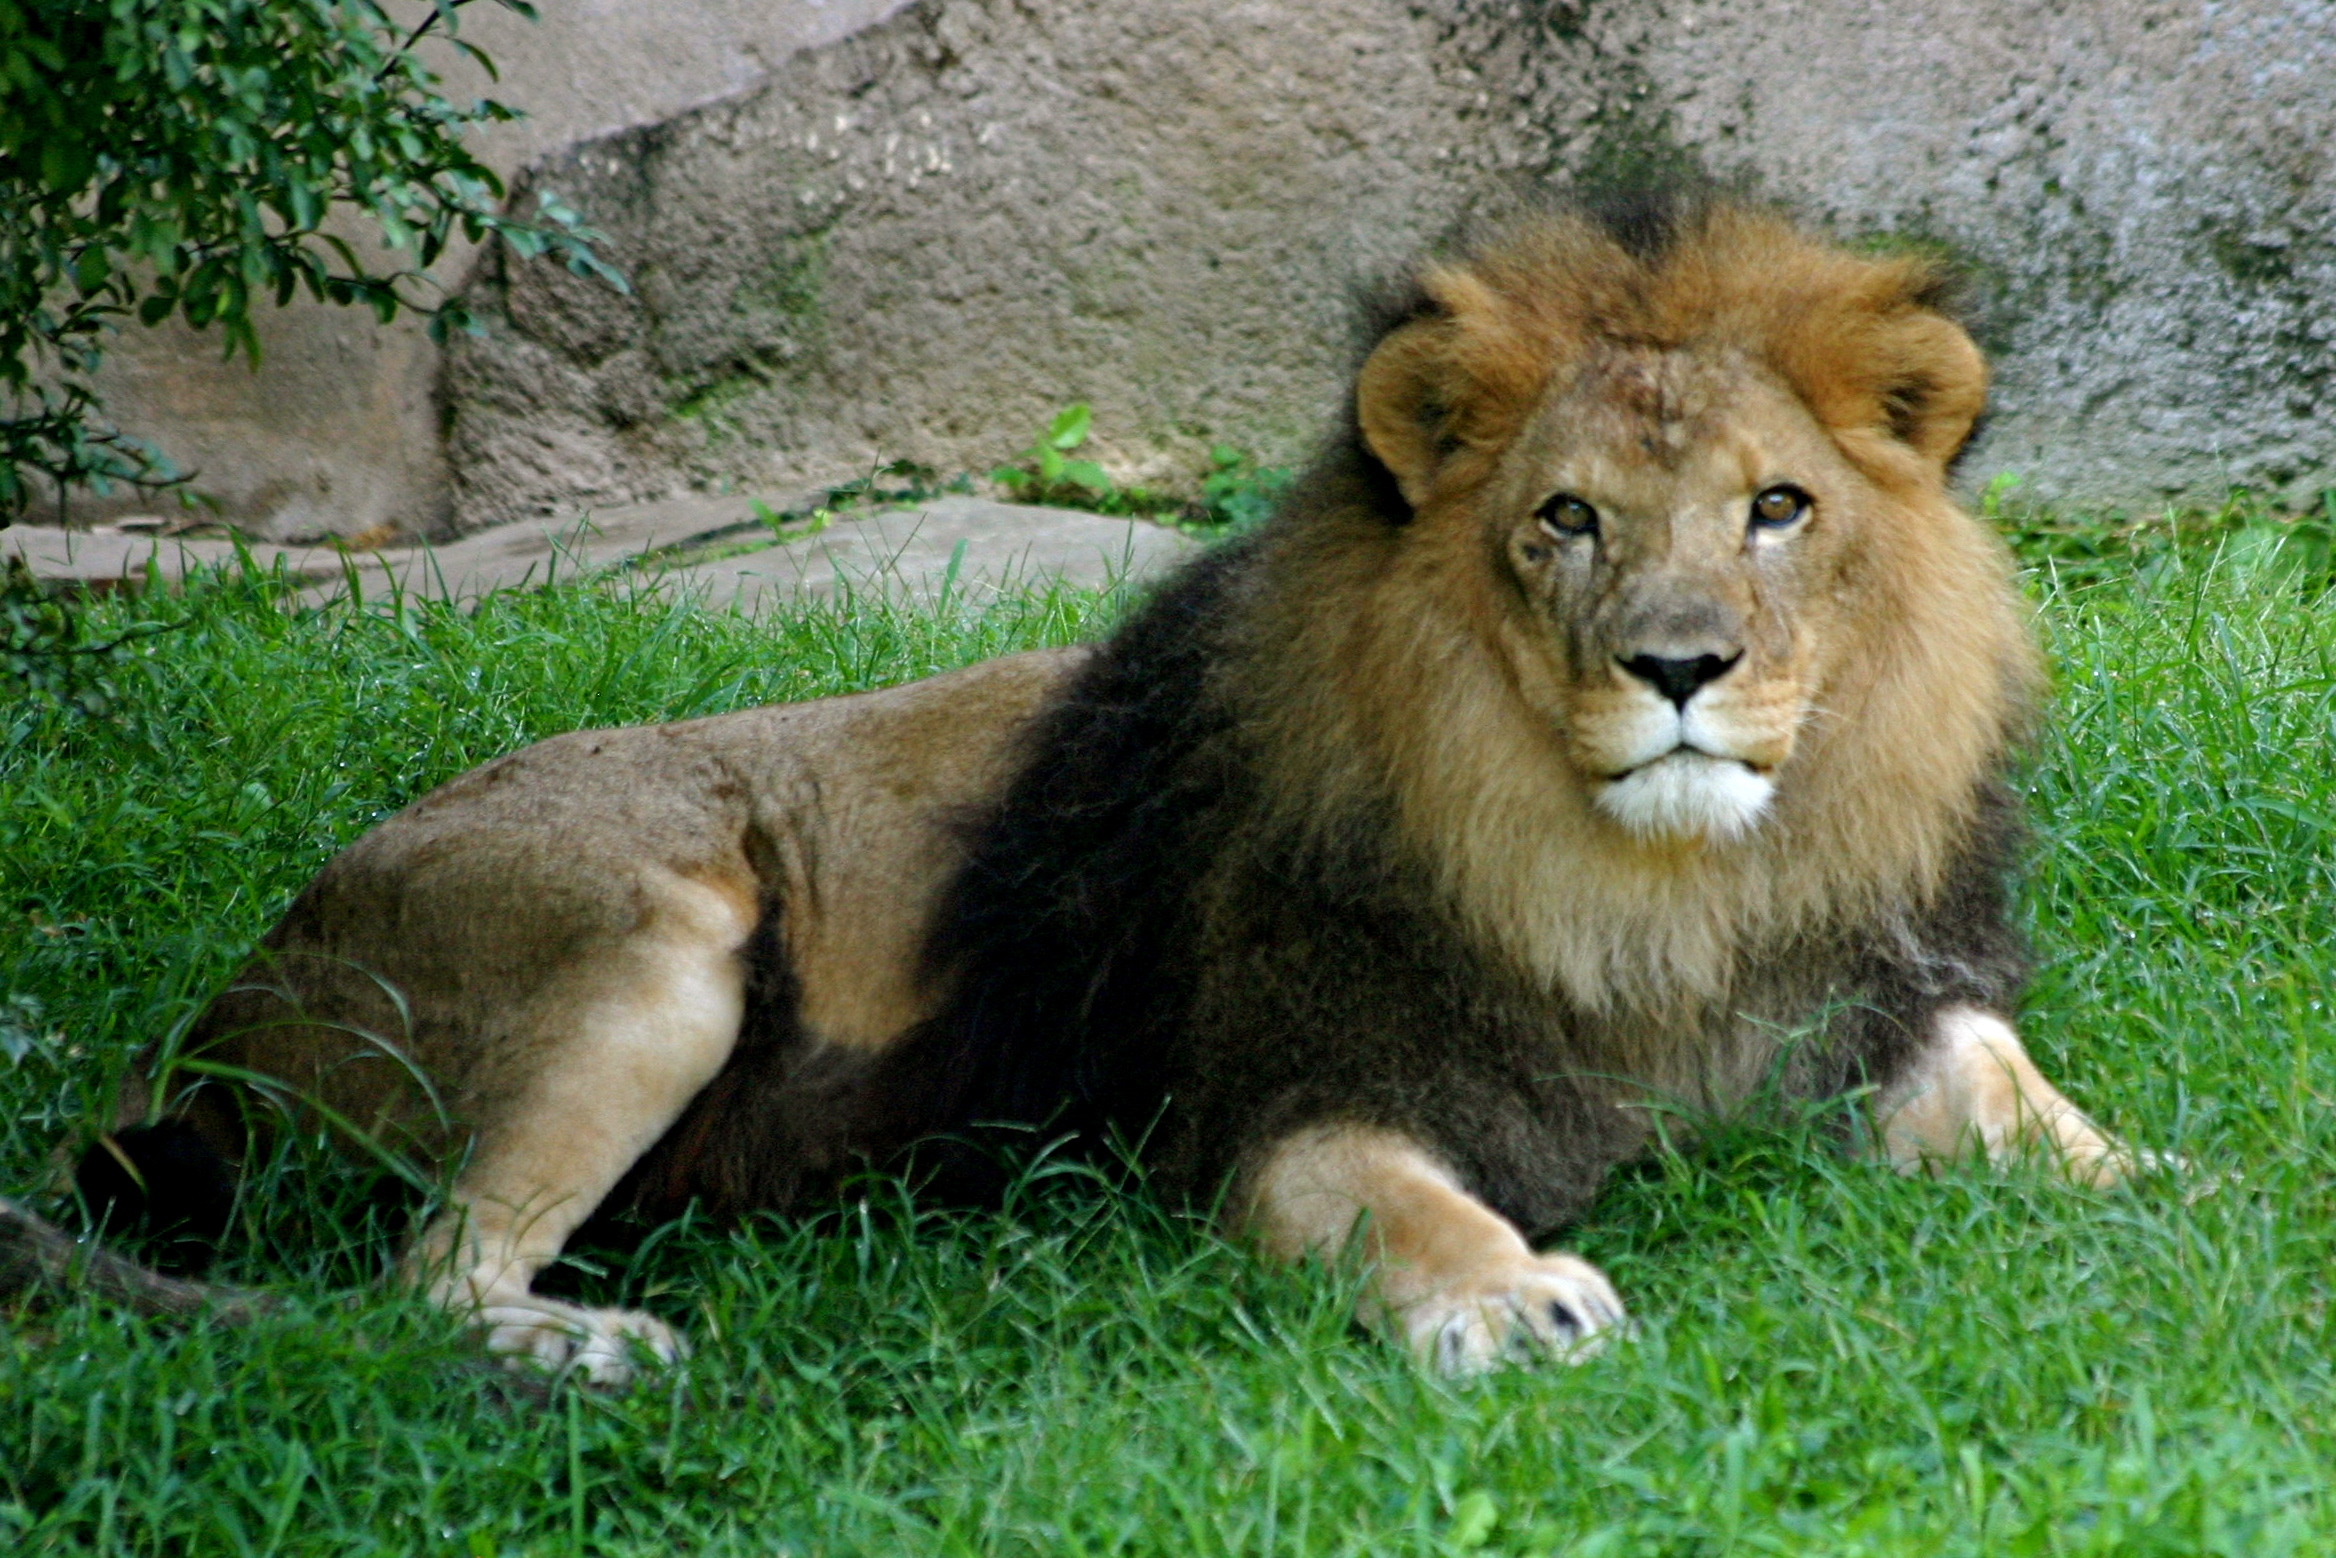 File:Fred the Lion full body resting.jpeg - Wikimedia Commons